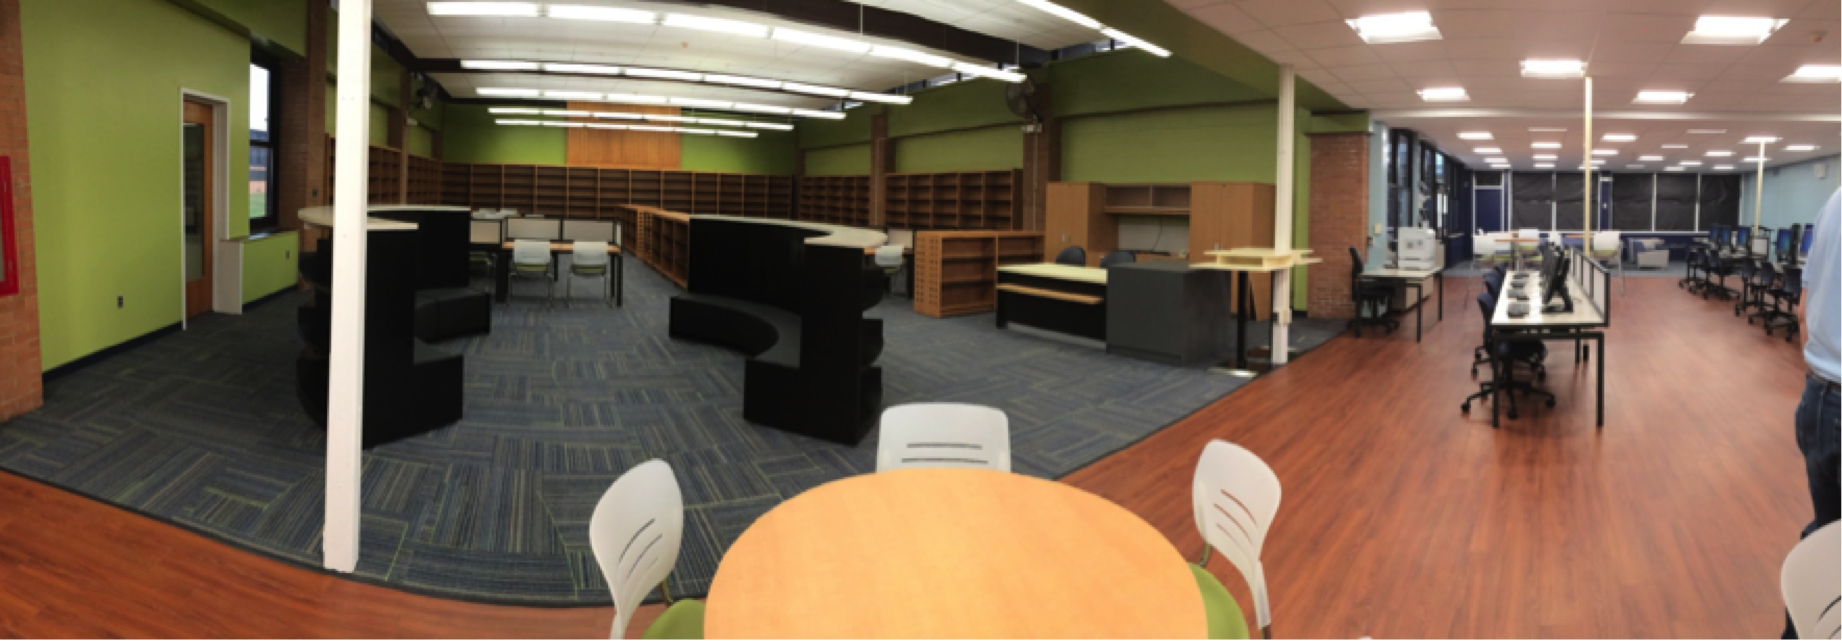 Library shelving on mresc cooperative pricing system archives bci - Great contemporary school furniture ...